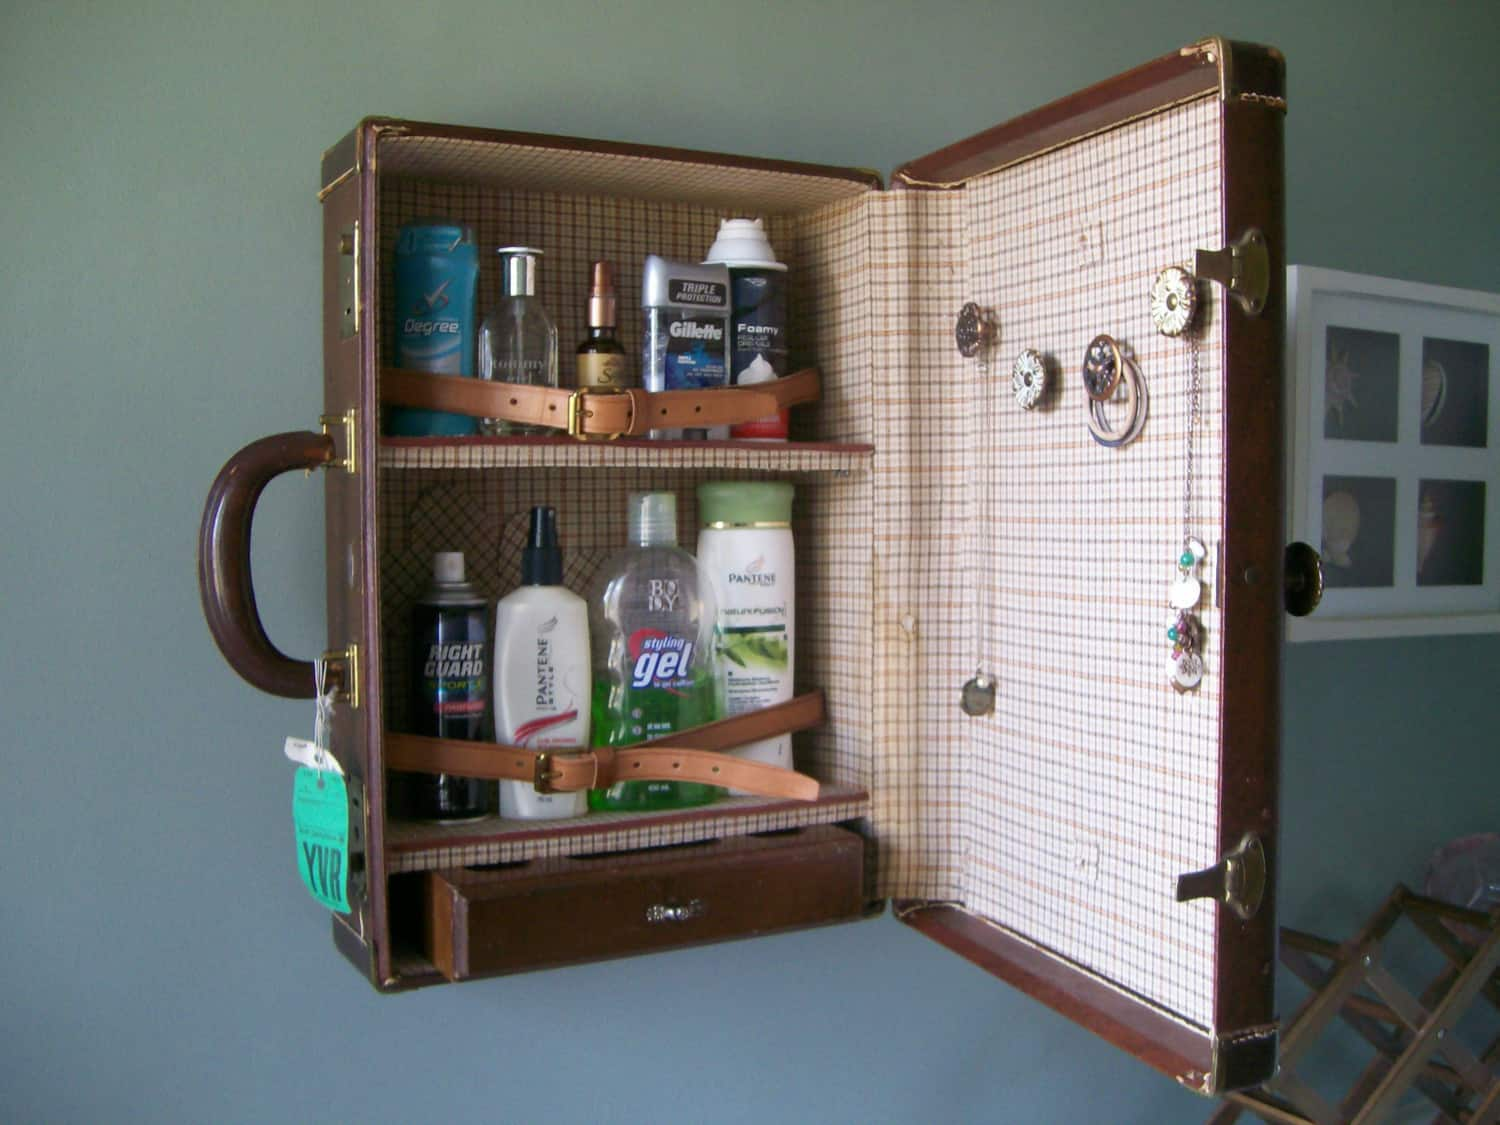 Diy Decor Ingenious Ways To Upcycle Old Suitcases In Style # Muebles Do It Yourself